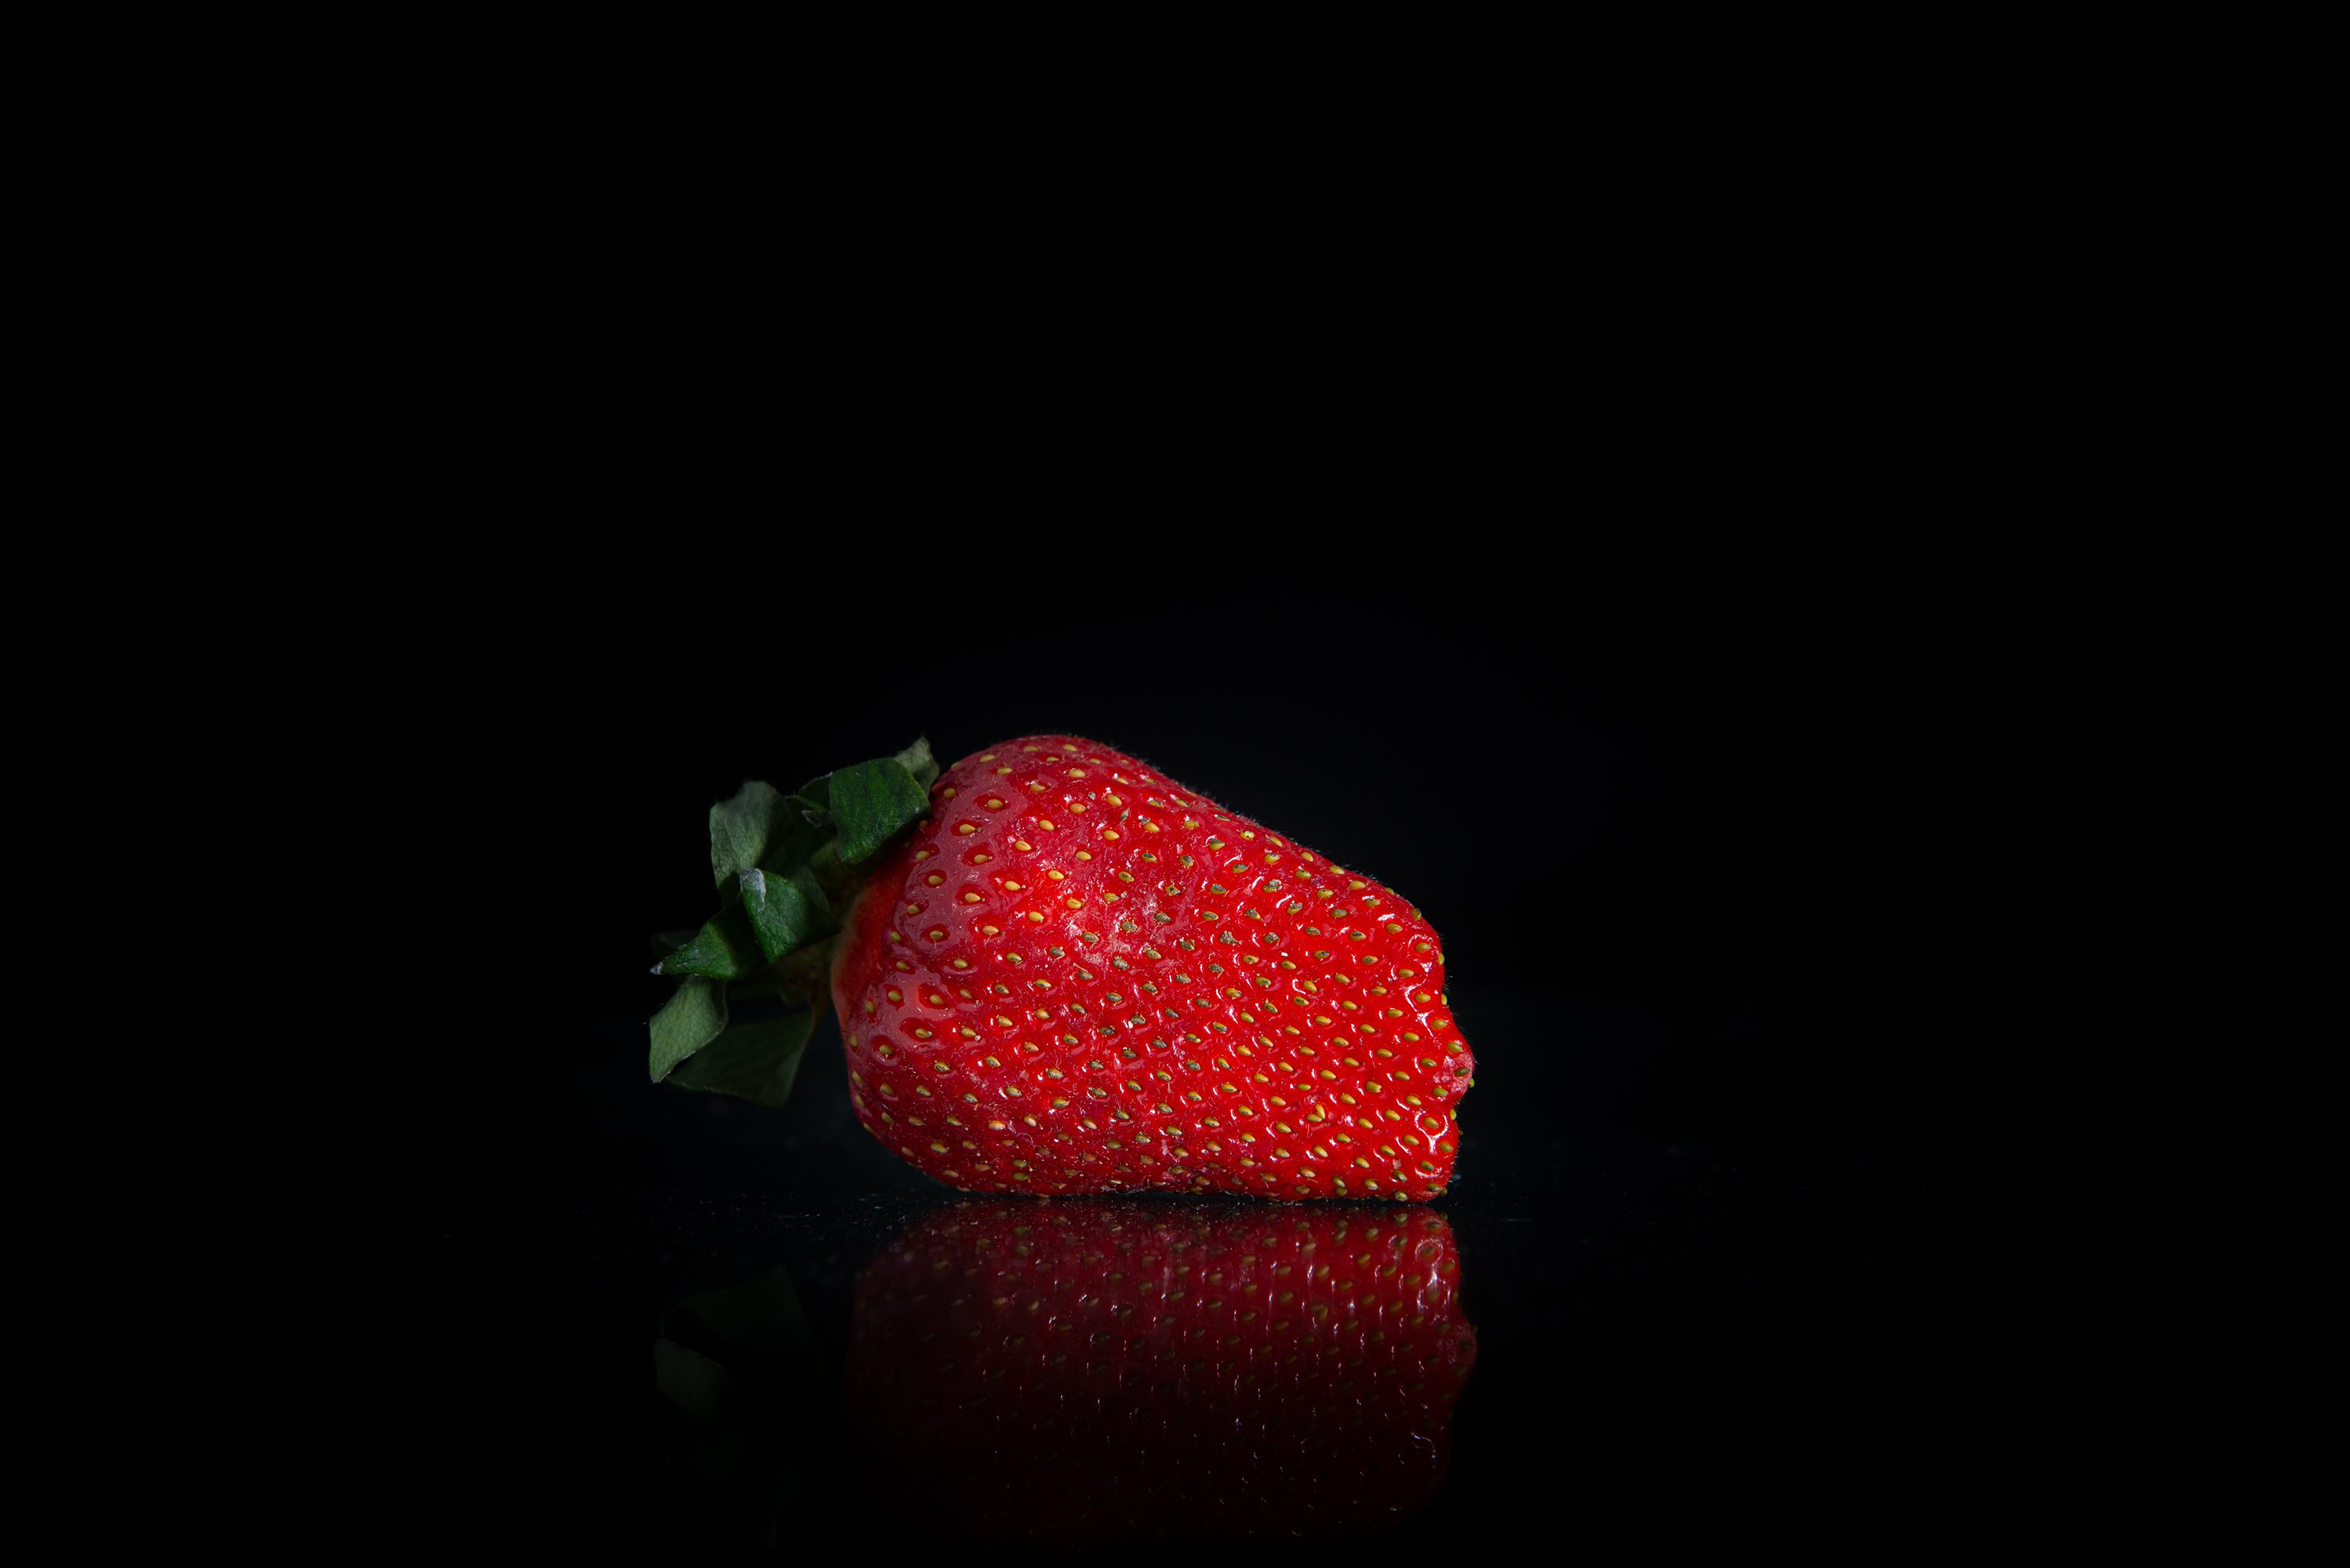 Giant fresh strawberries on a black background example image 1